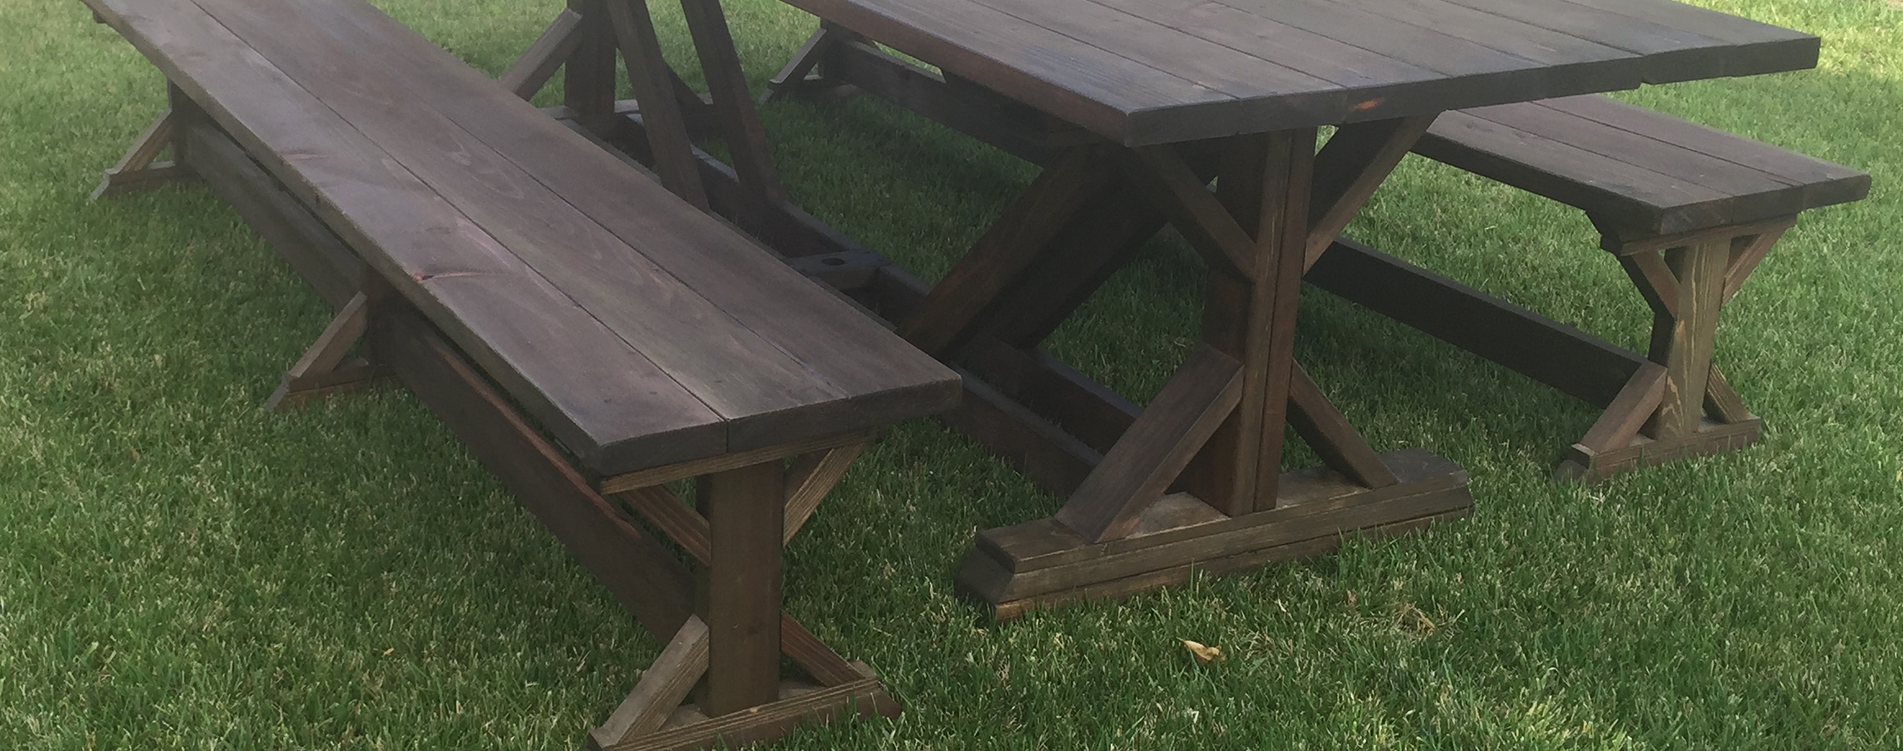 tablebenches-2